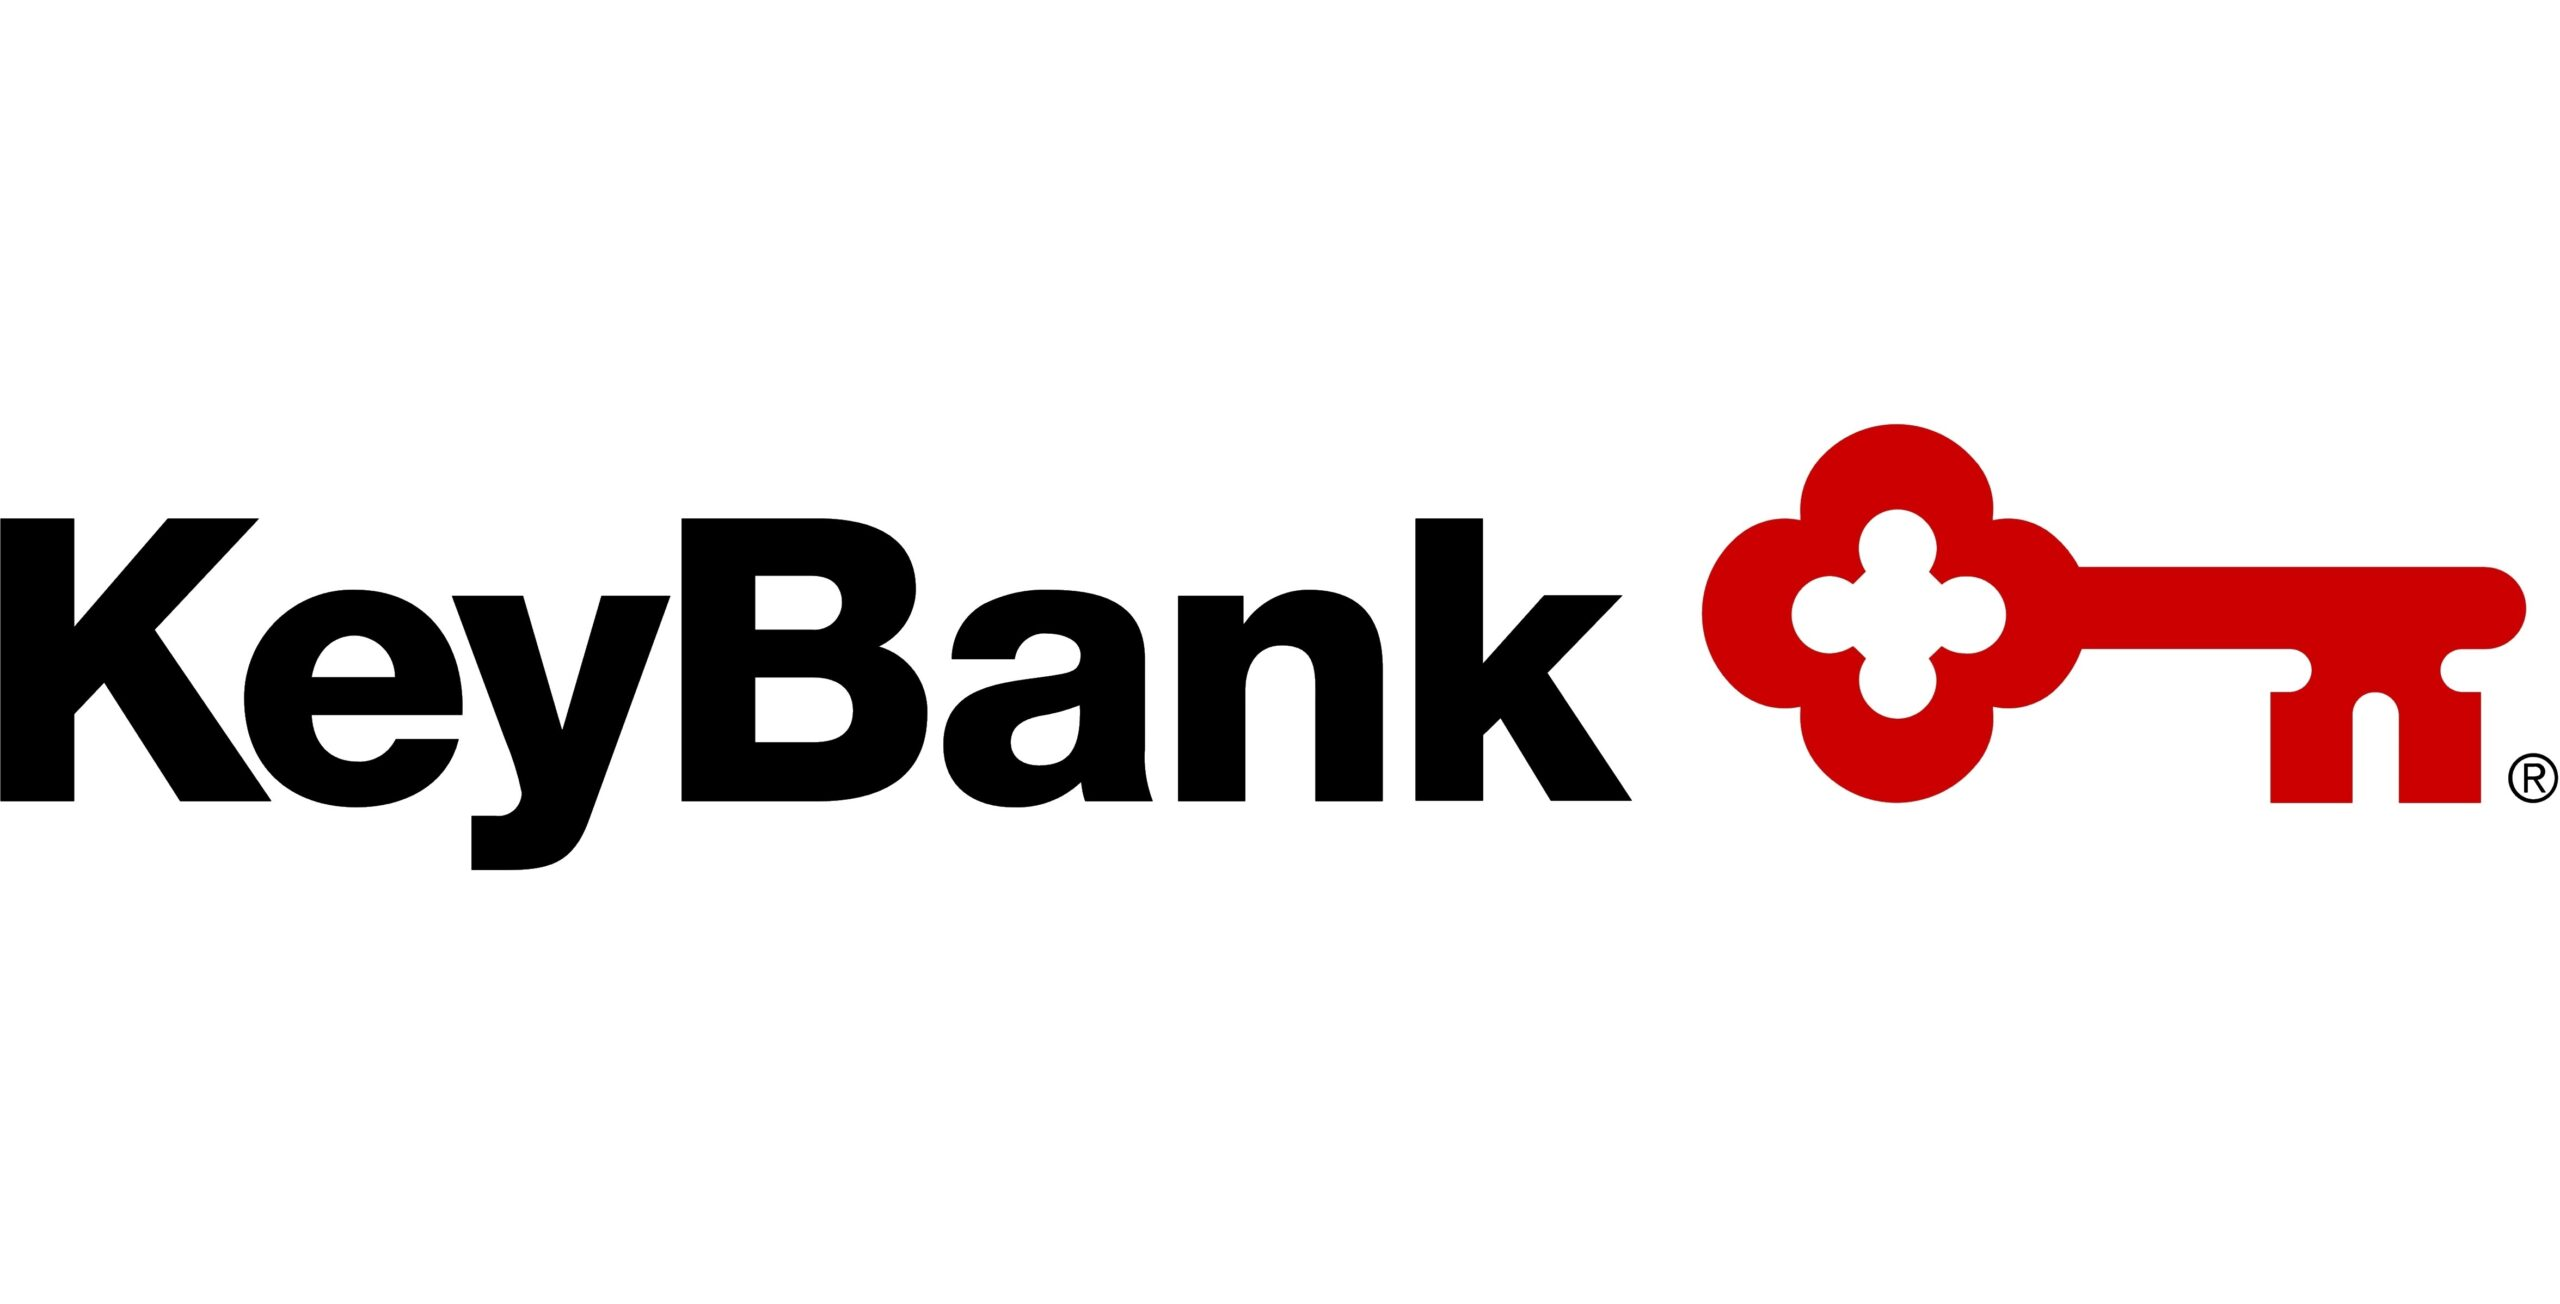 keybank to try!